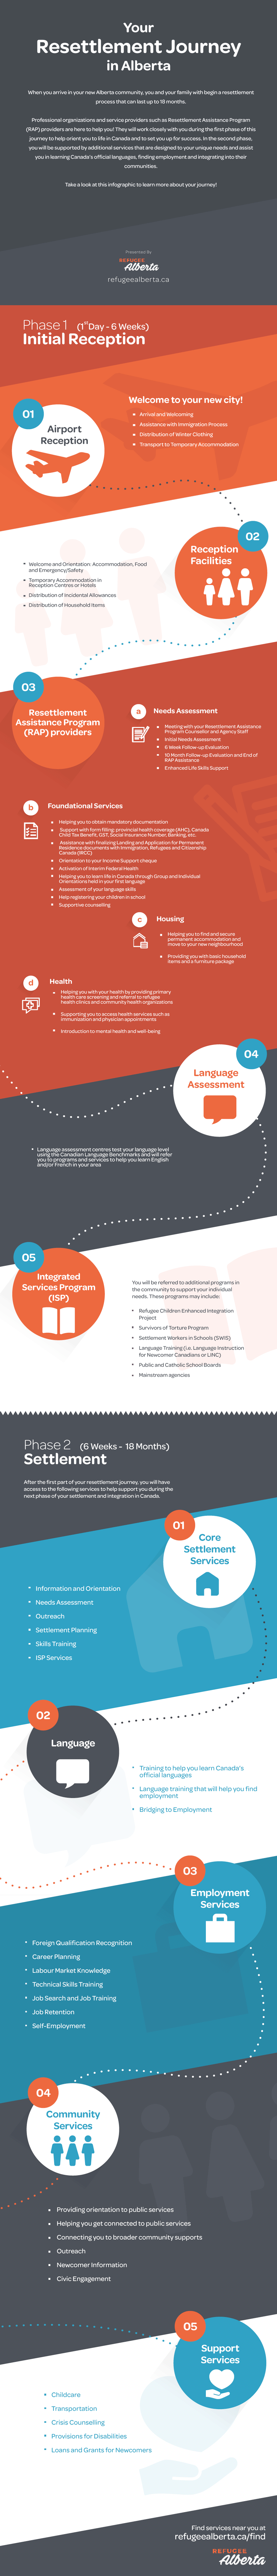 Alberta refugee resettlement process infographic